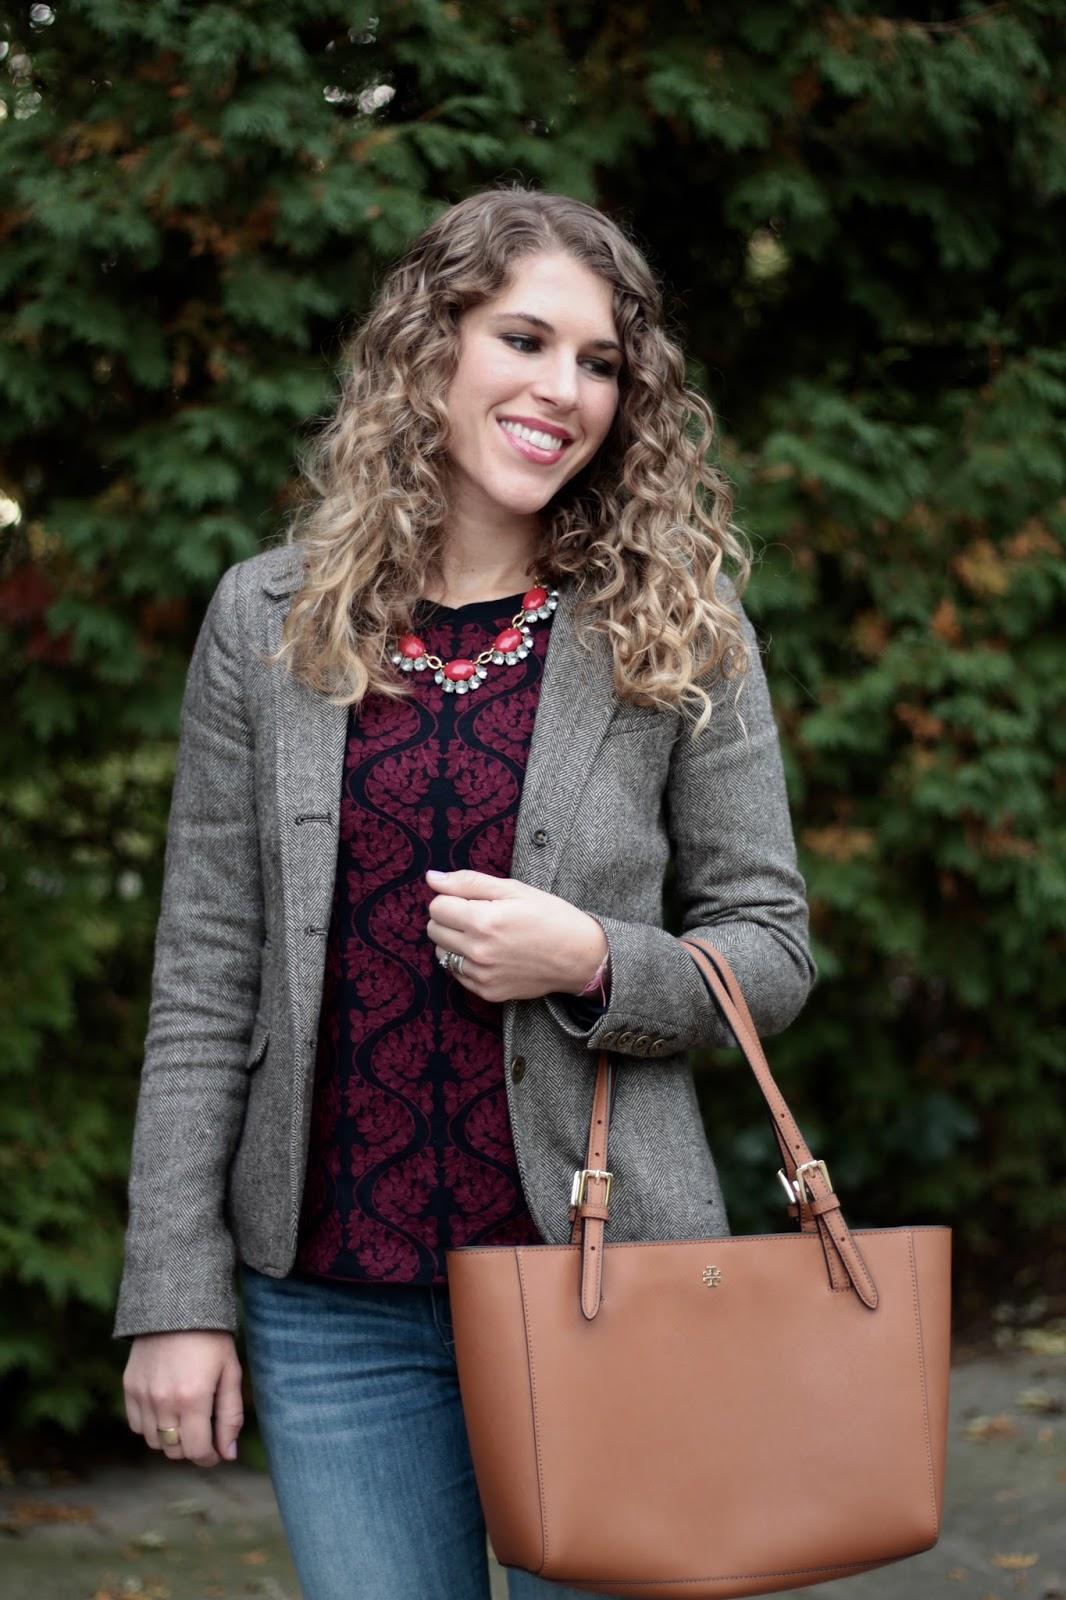 damask J.Crew sweater, tweed blazer, Express jeans, navy flats, Tory Burch tote